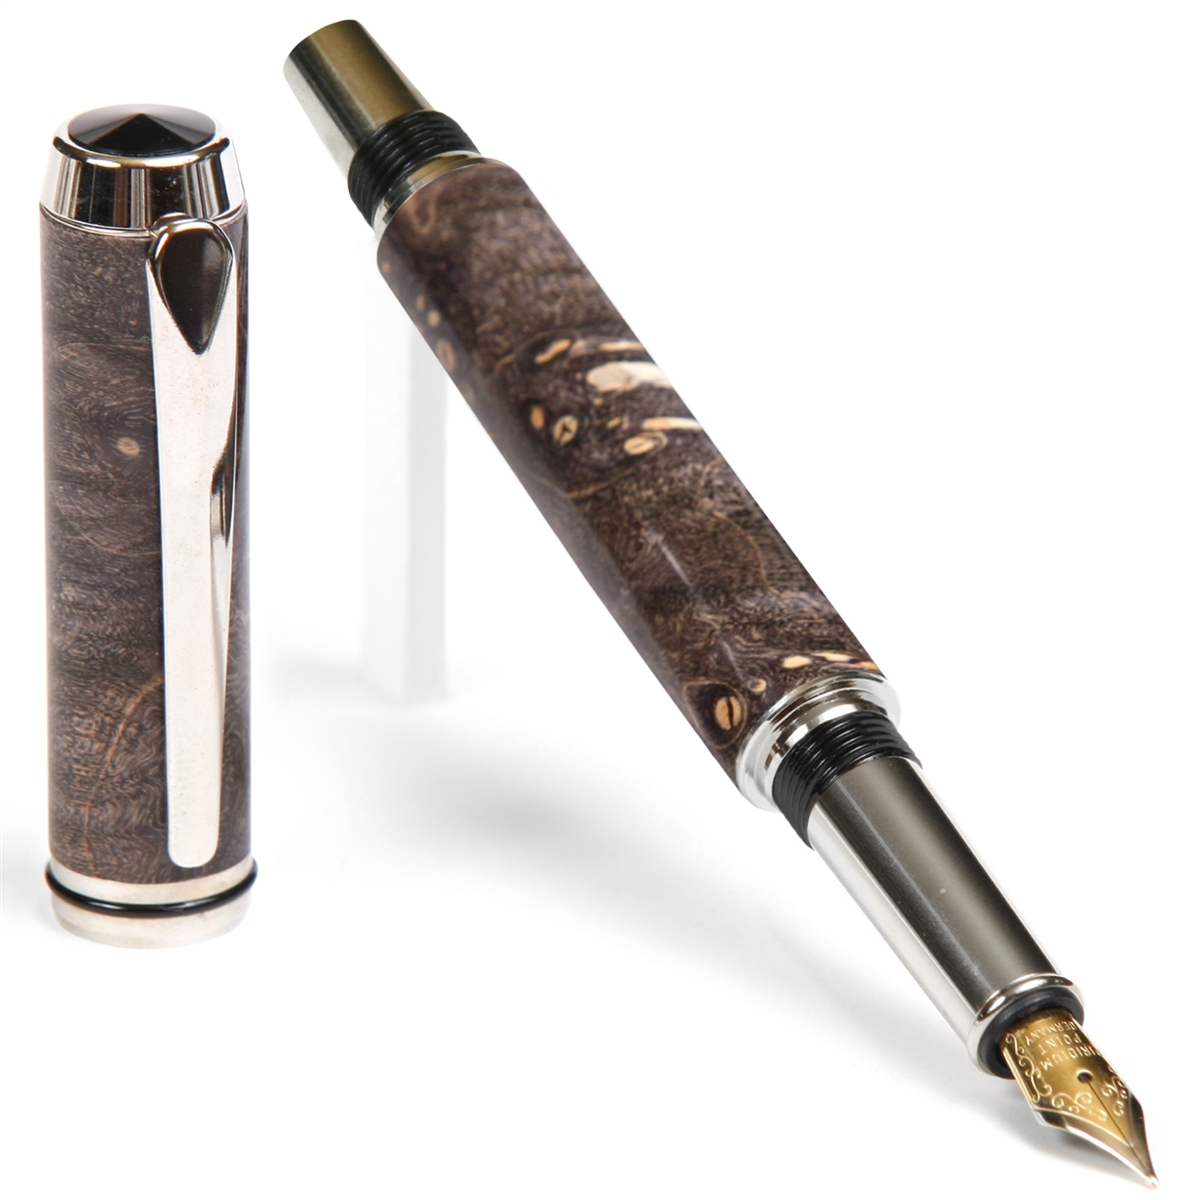 Baron Fountain Pen - Gray & Black Maple Burl